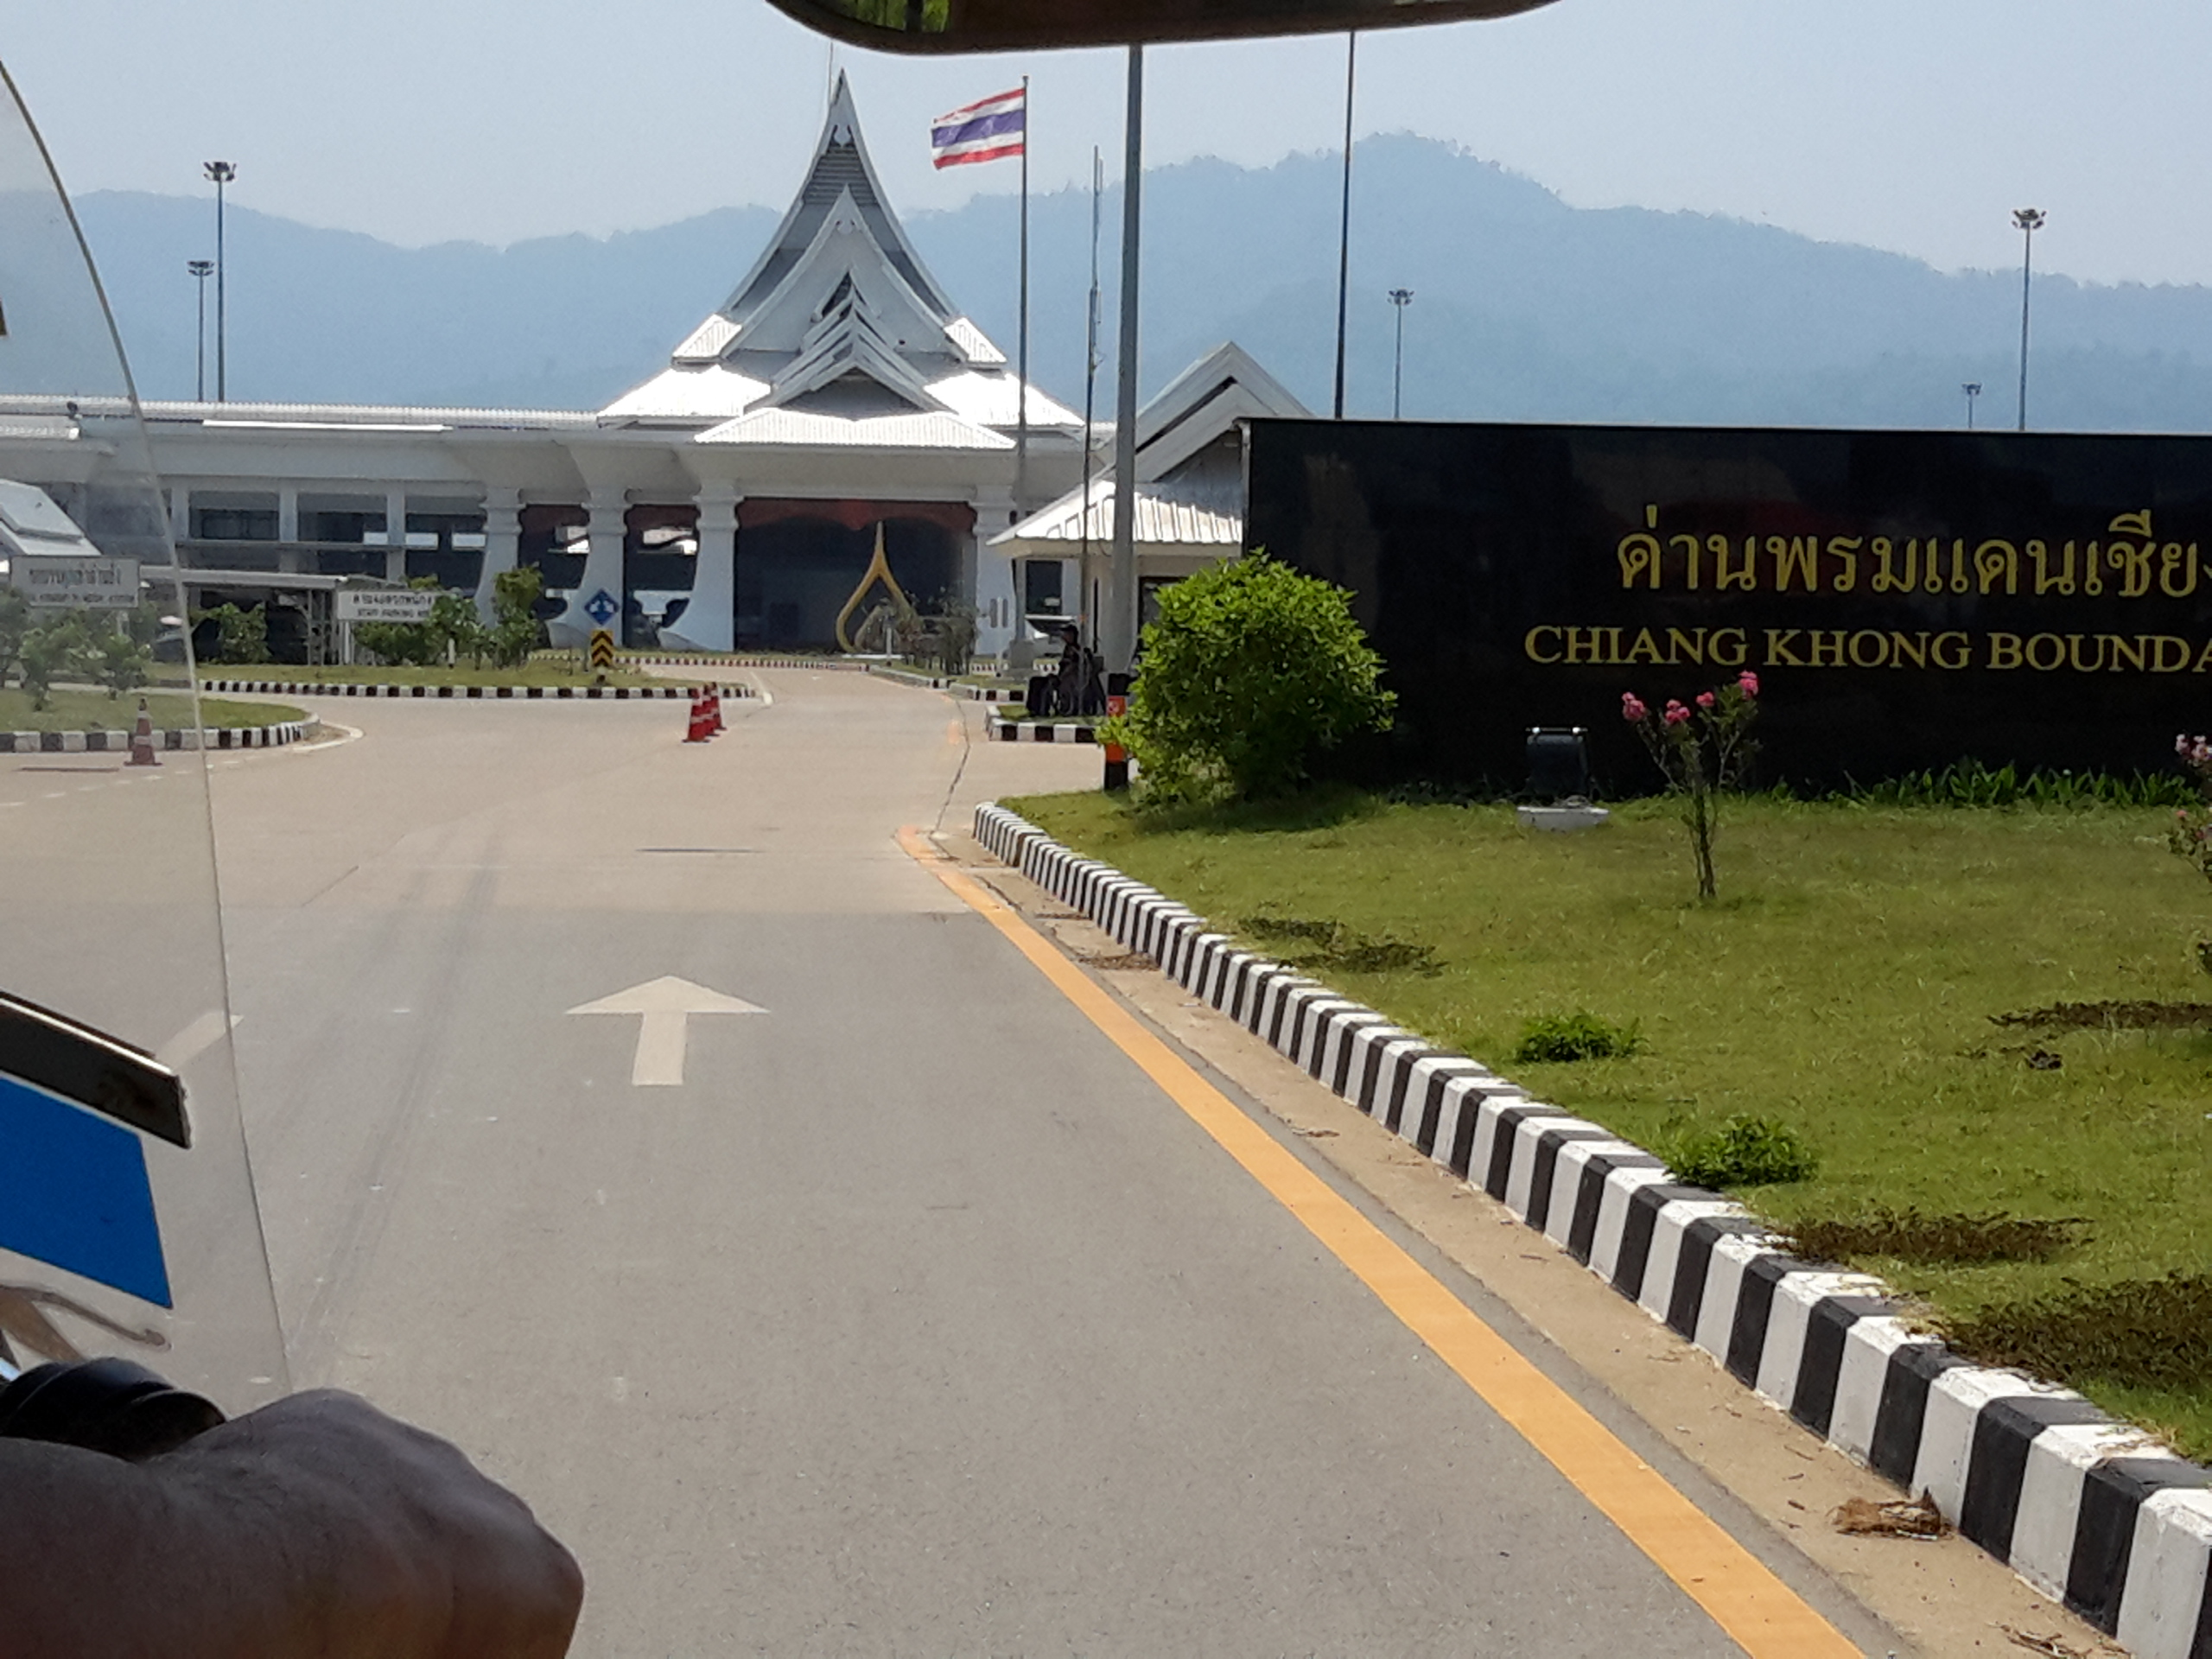 Chiang Khong Border in Thailand